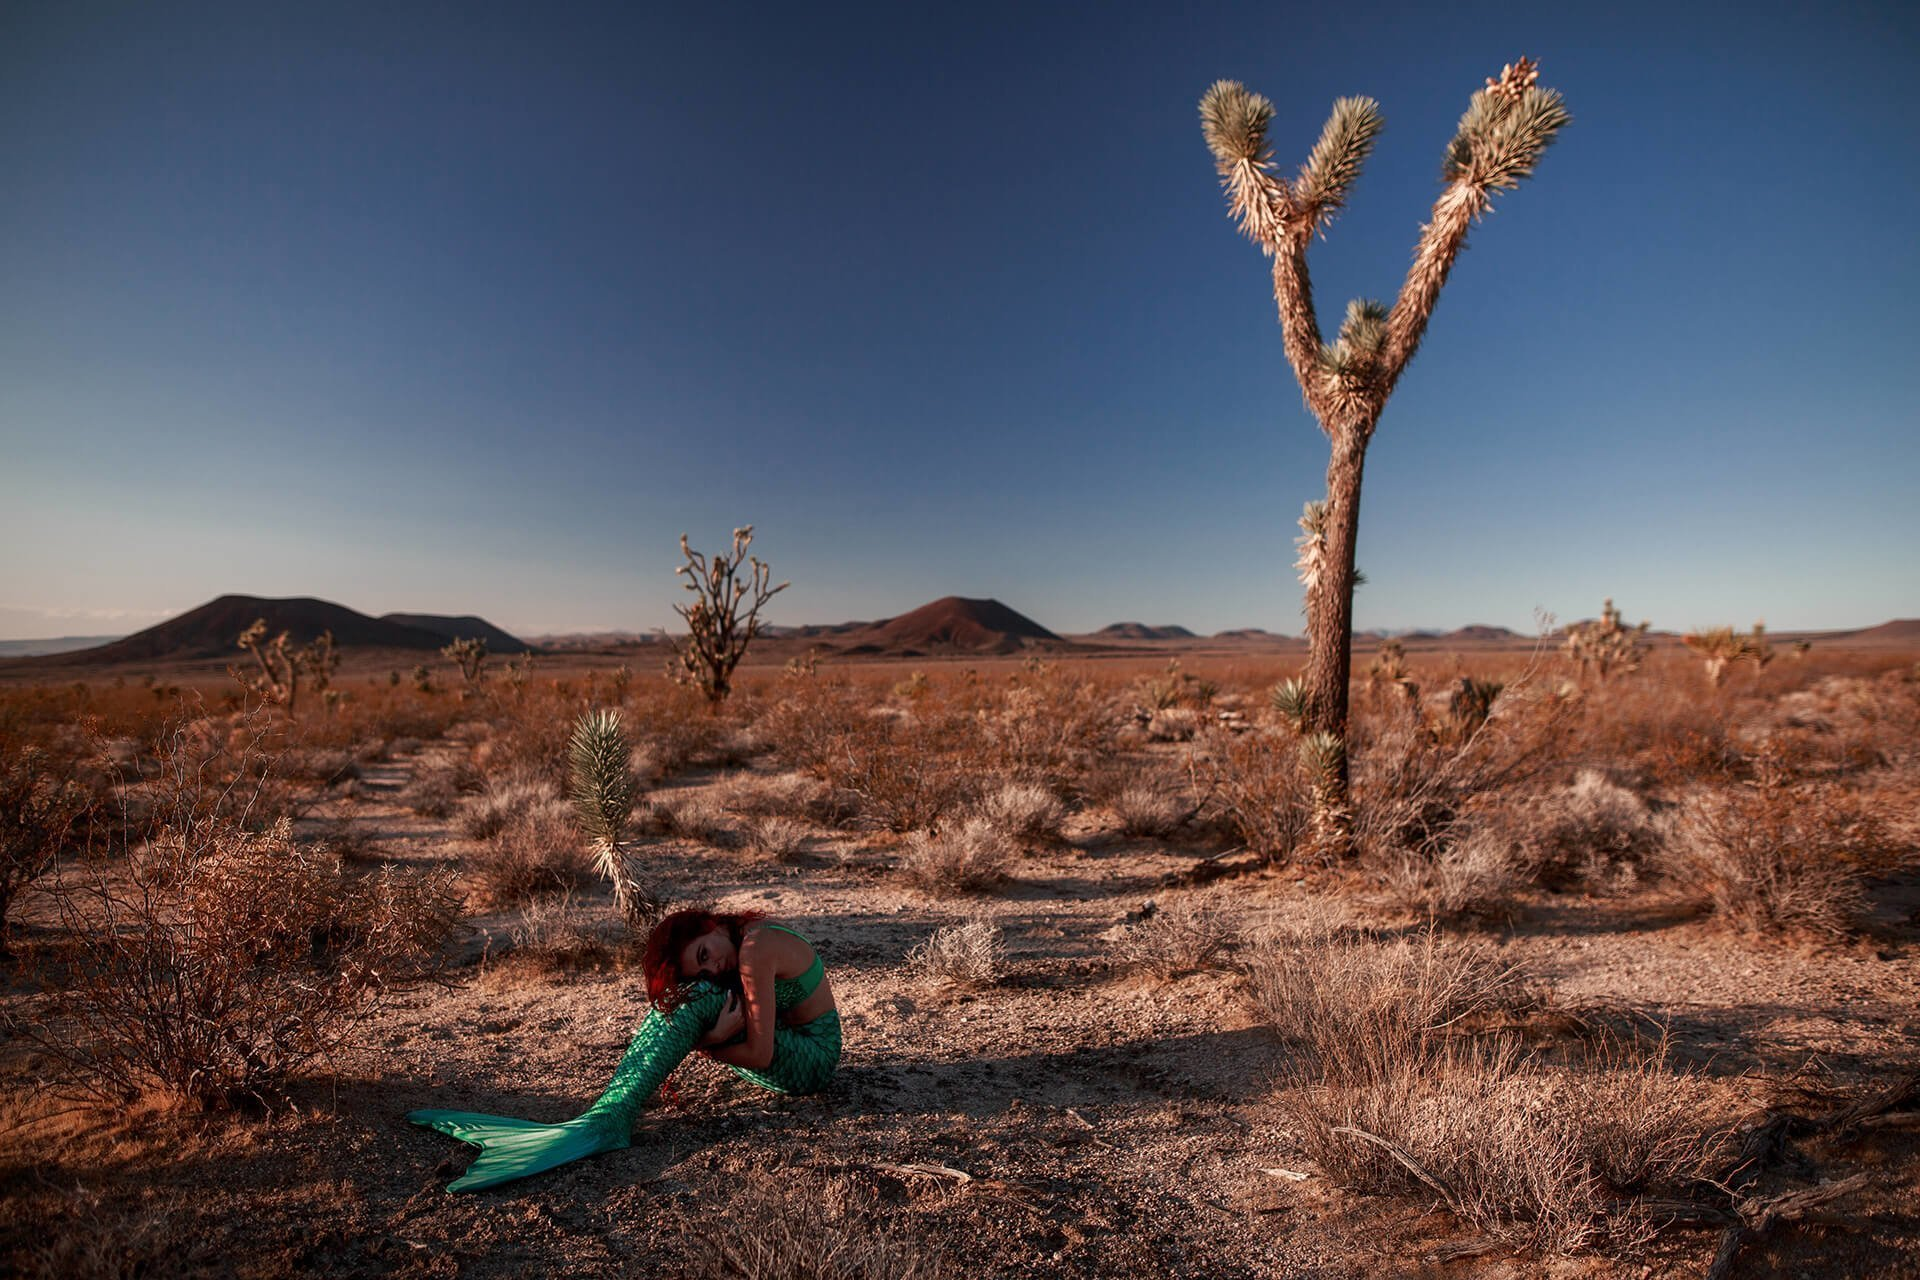 Mermaid Photoshoot LA Mojave Desert California 8